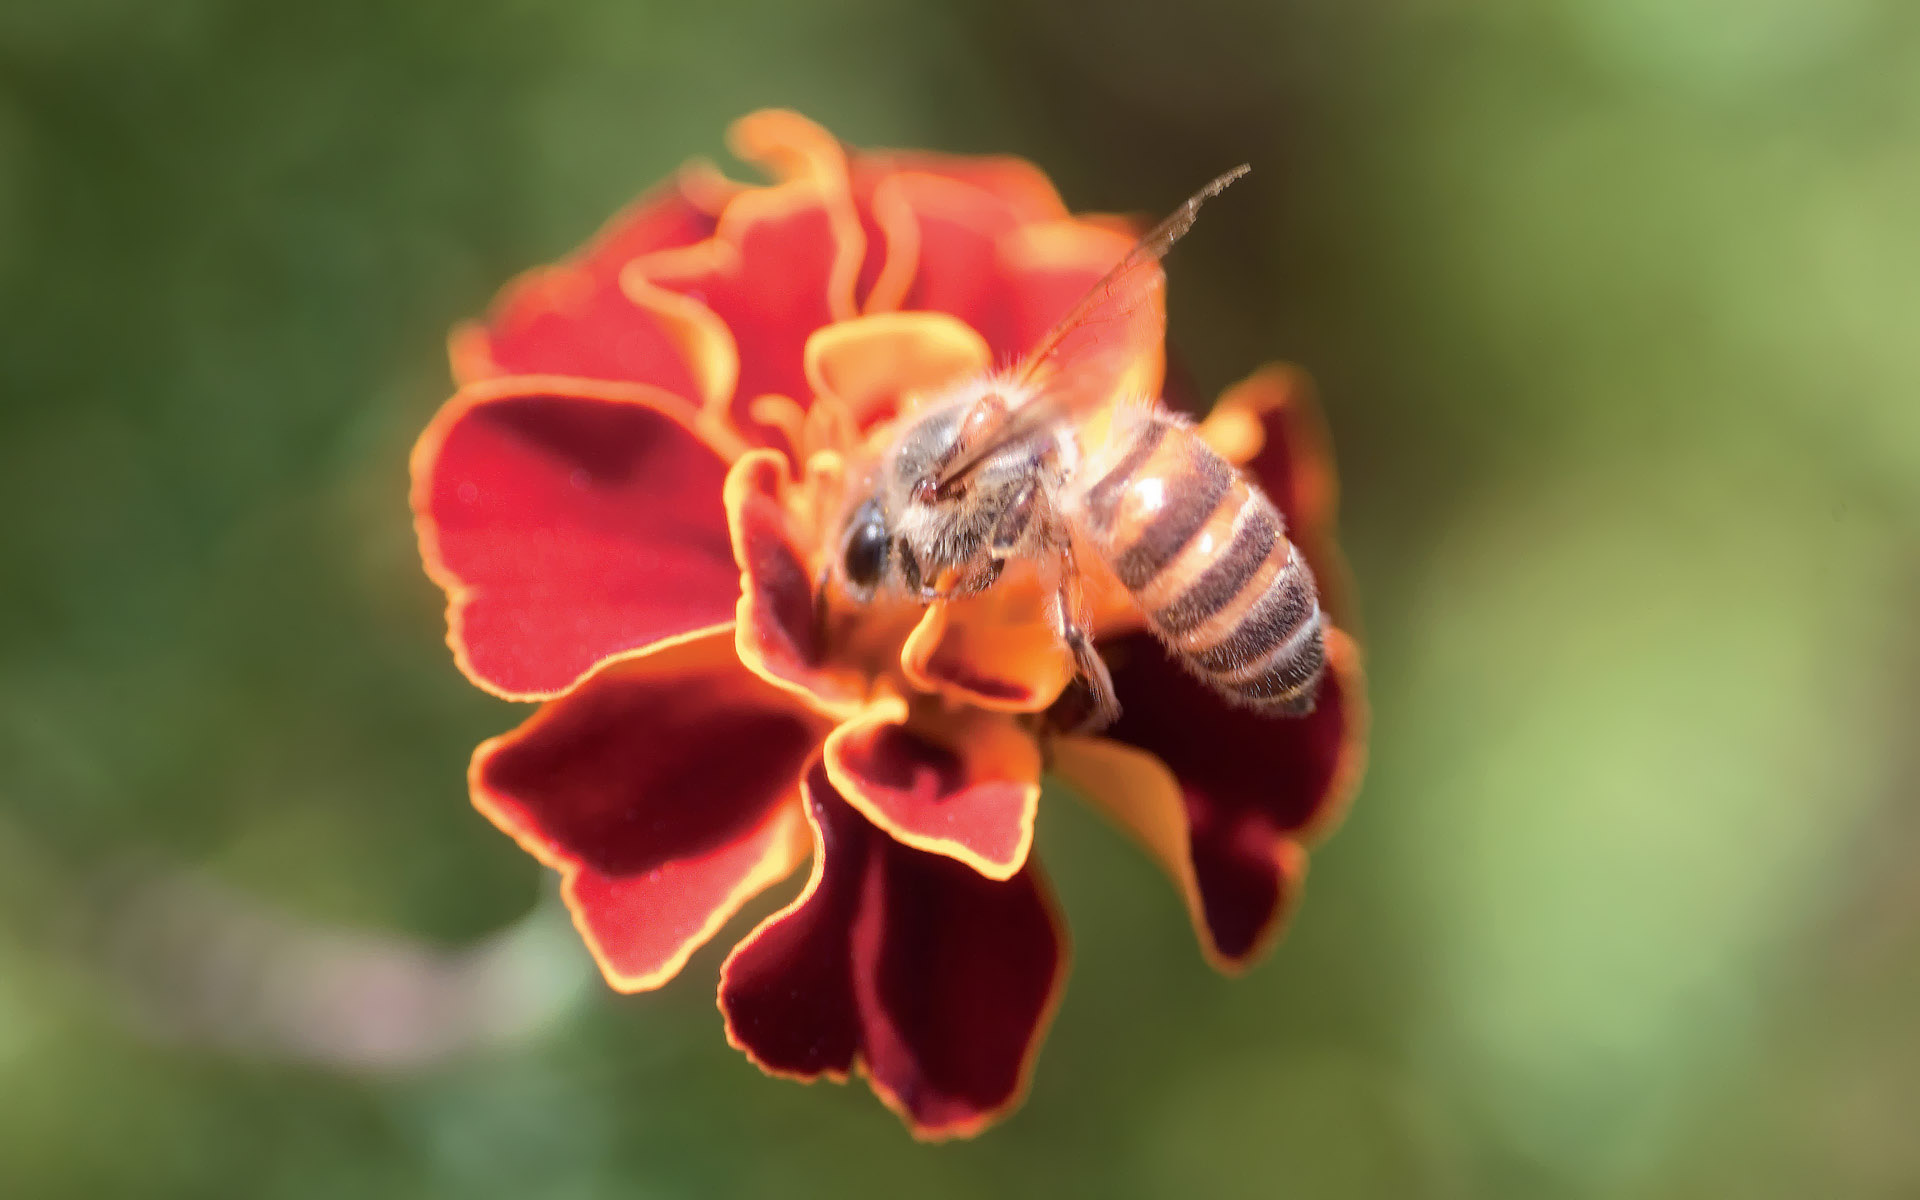 click to free download the wallpaper--Flower Photography, Deligent Bee on a Red Flower, Unwilling to Leave 1920X1200 free wallpaper download